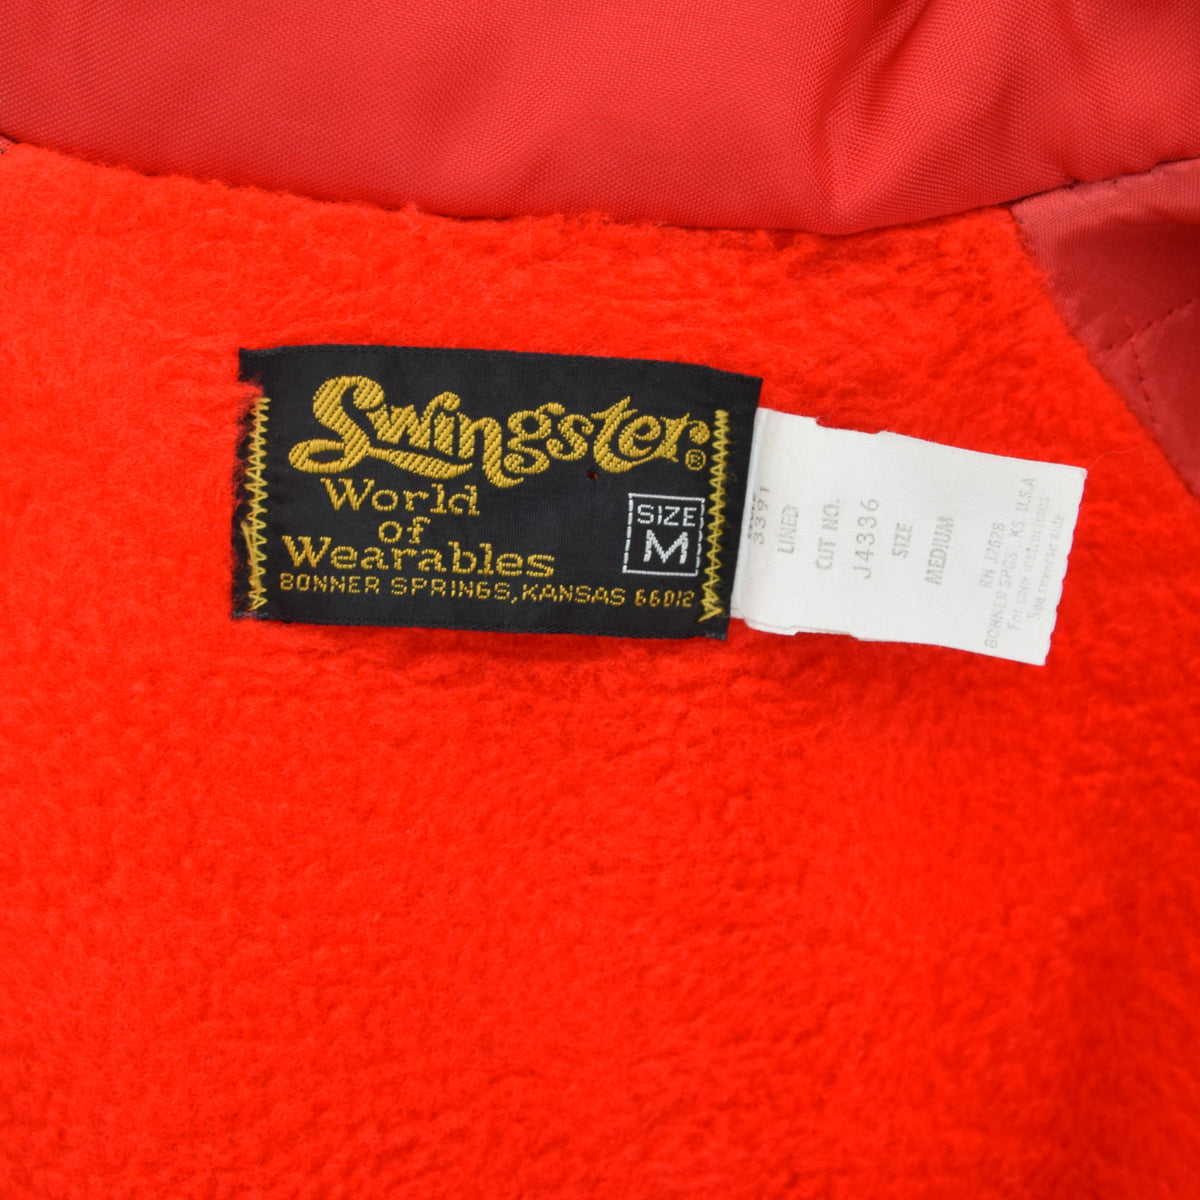 Vintage Swingsters Red Nylon Coach Jacket Made in USA M label